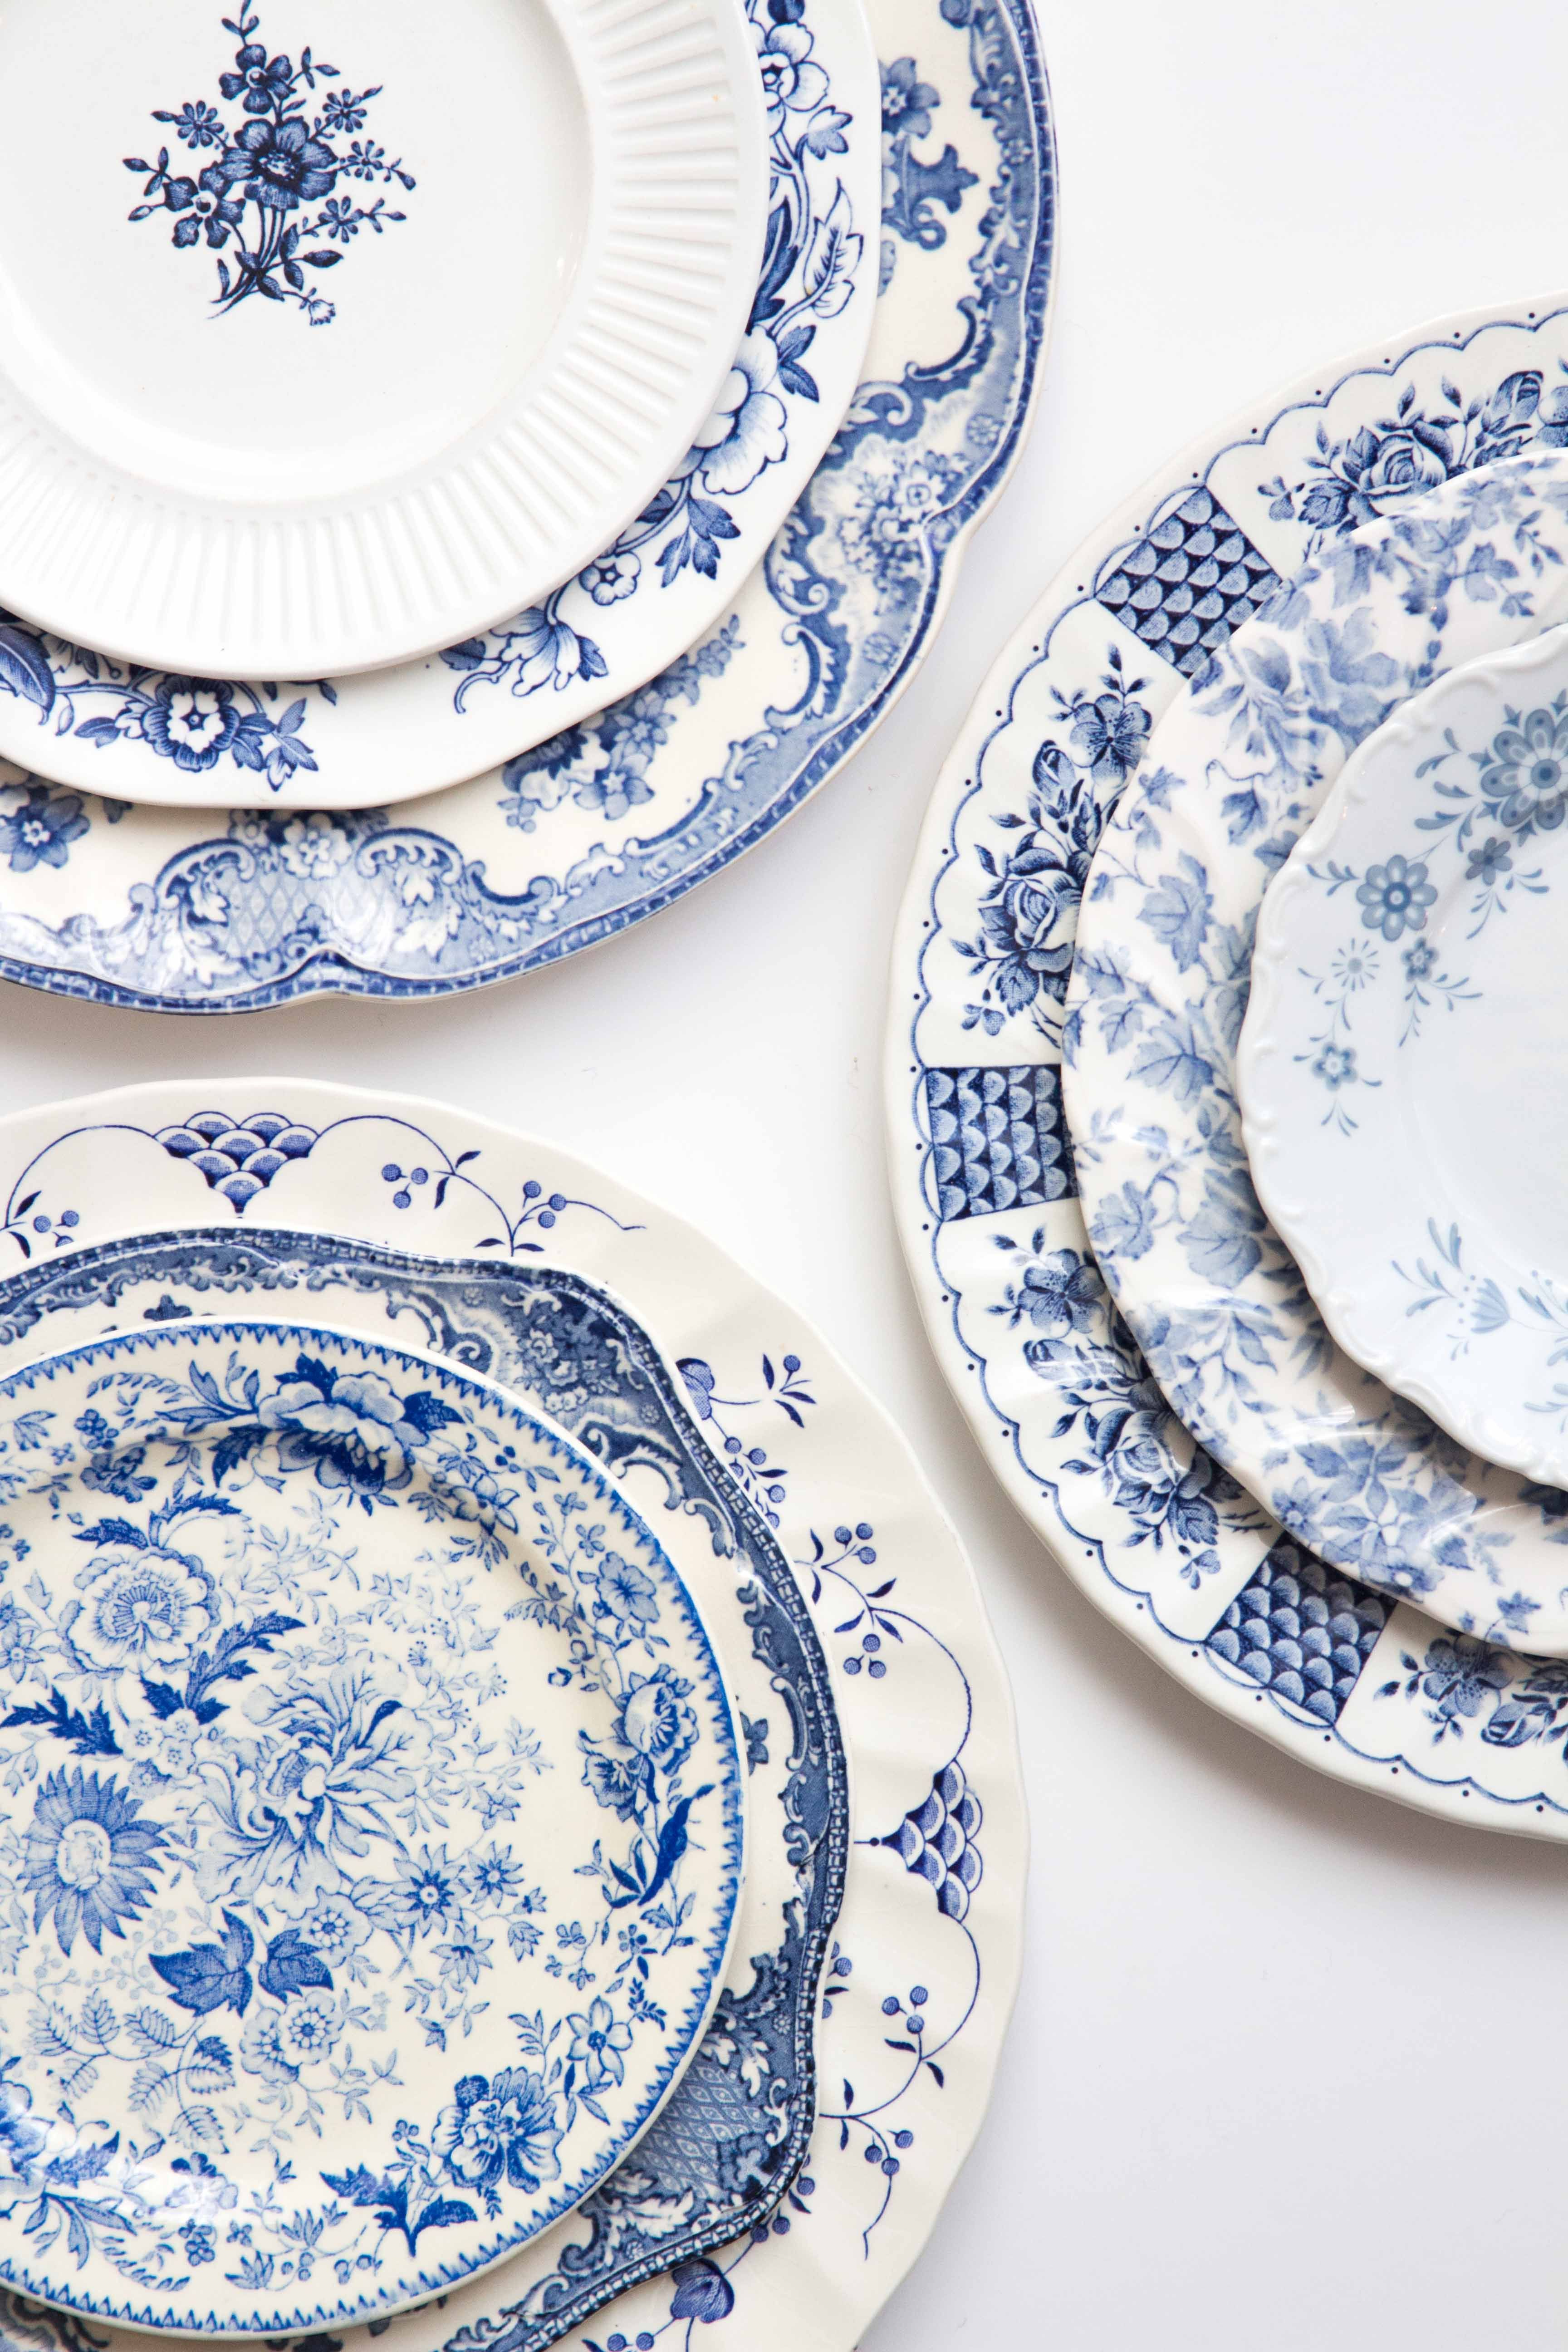 Greek Collection Dinner Plate Blue And White Dinnerware Blue And White China Vintage Crockery Blue and white salad plates